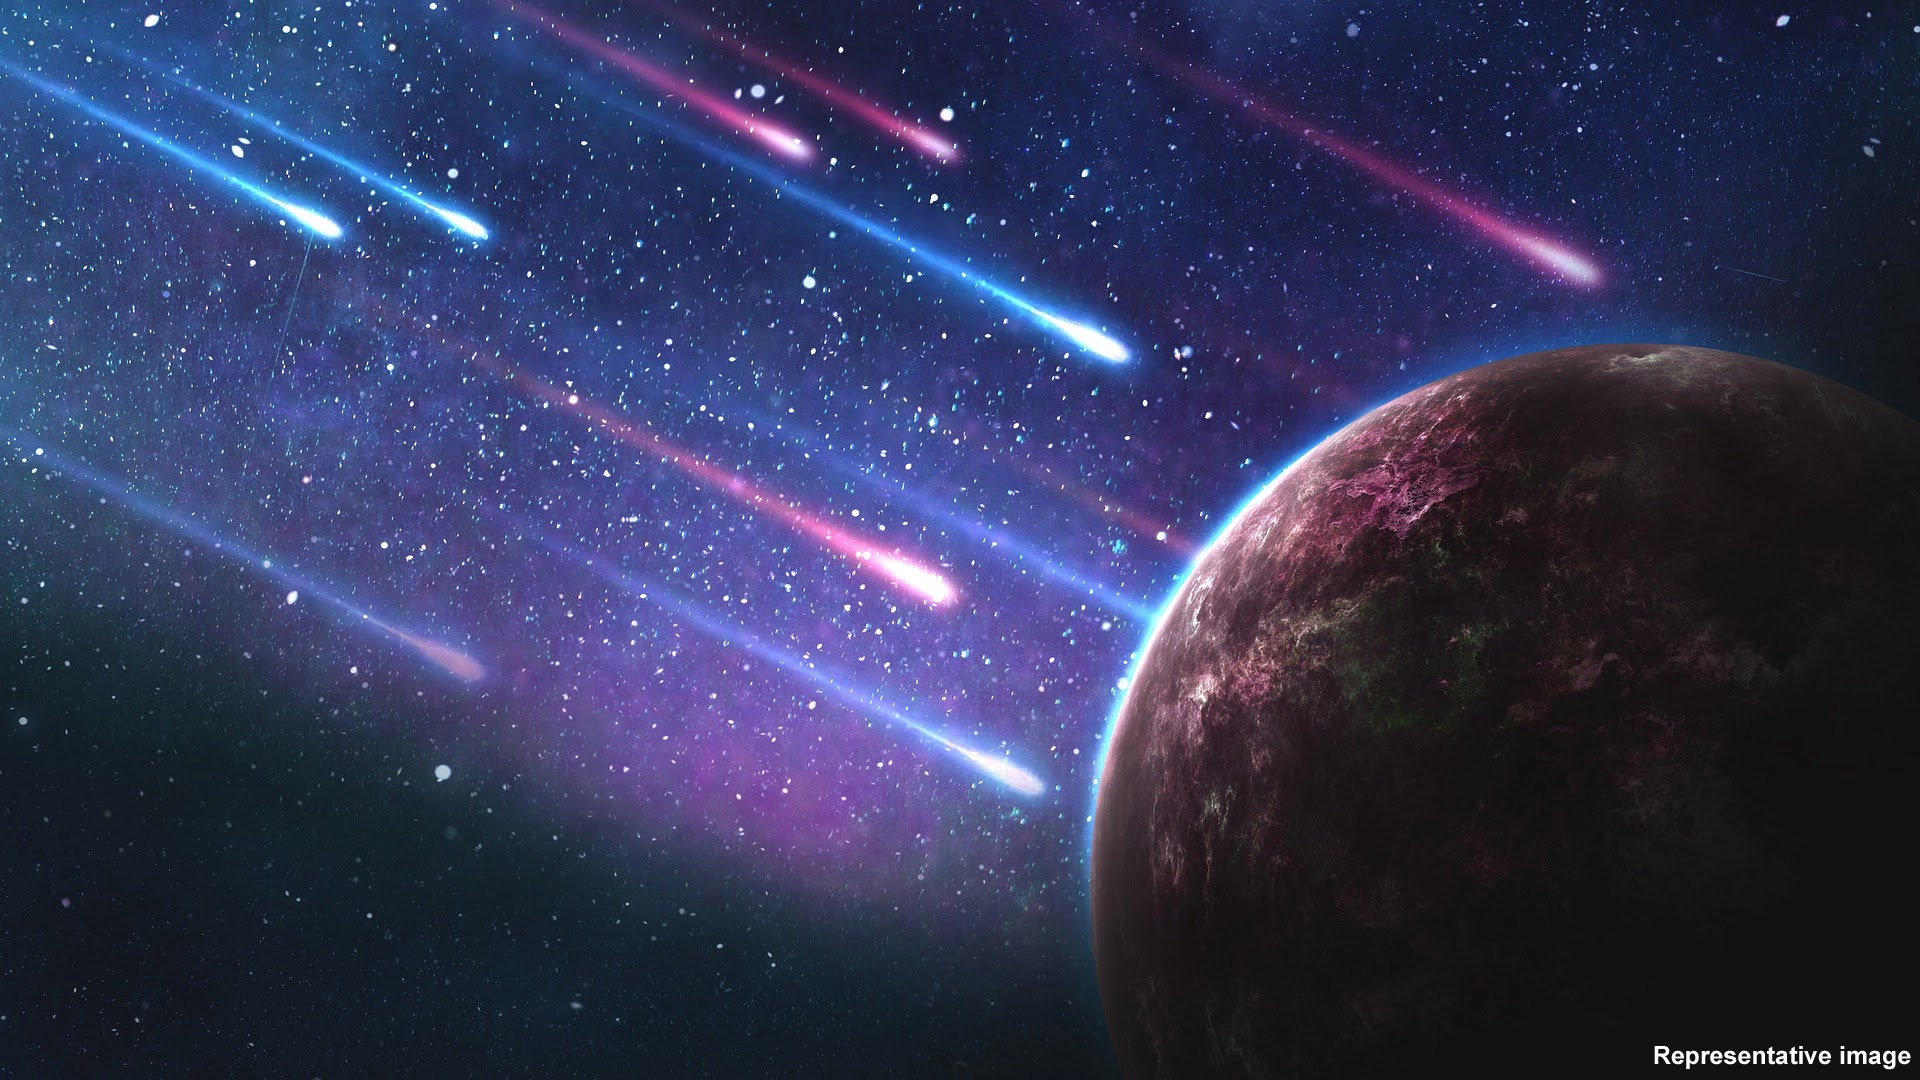 Earth Receives Over 5,000 Tonnes Of Extraterrestrial Dust Each Year